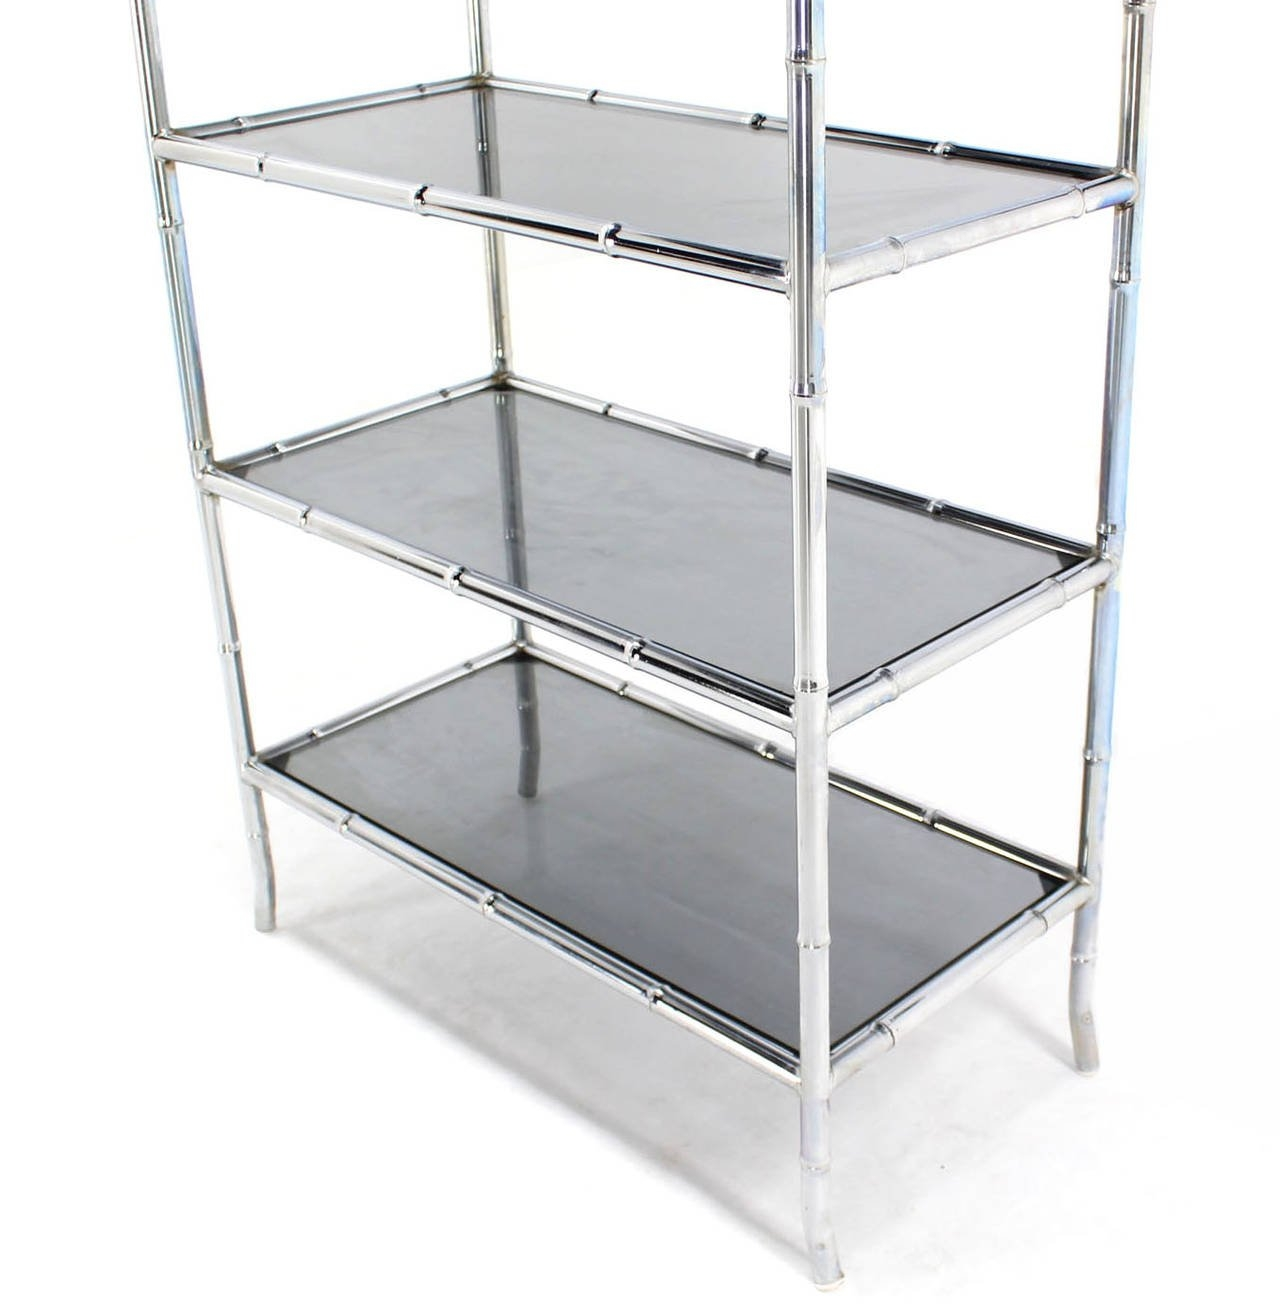 Chrome Faux Bamboo Etagere Unit With Smoked Glass Shelves At 1stdibs Inside Smoked Glass Shelf (Photo 6 of 15)